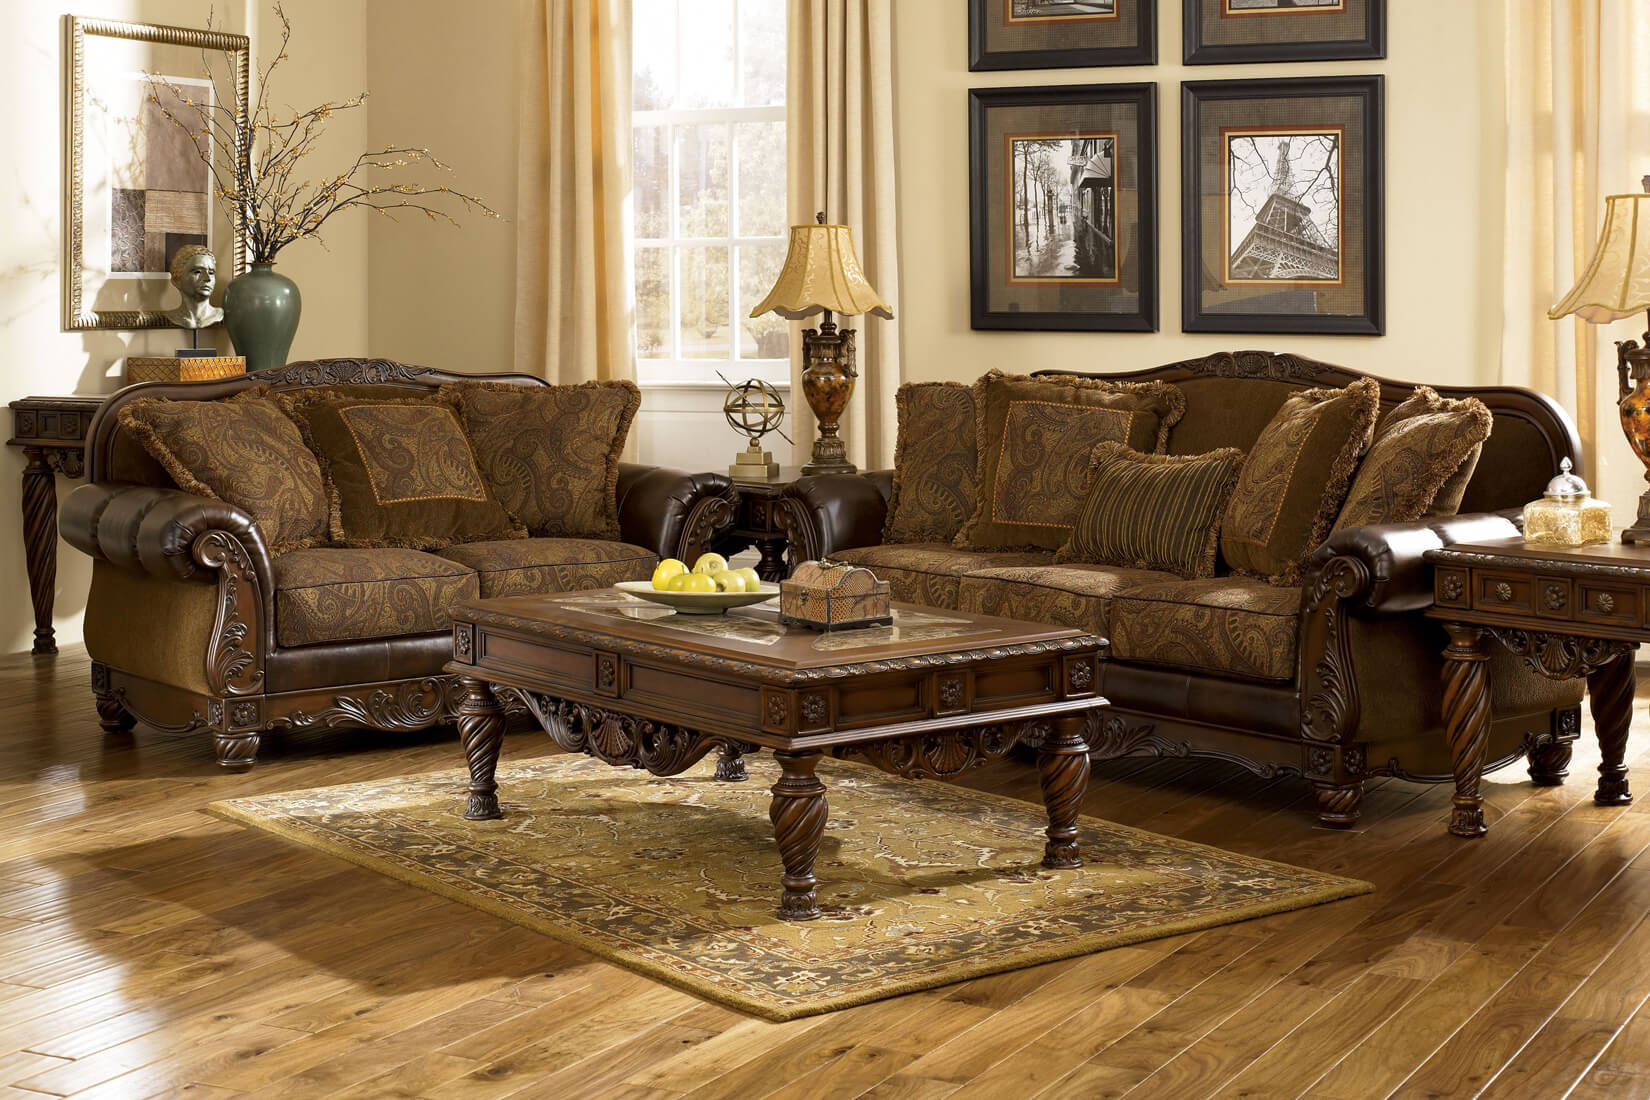 living-room-furniture.jpg